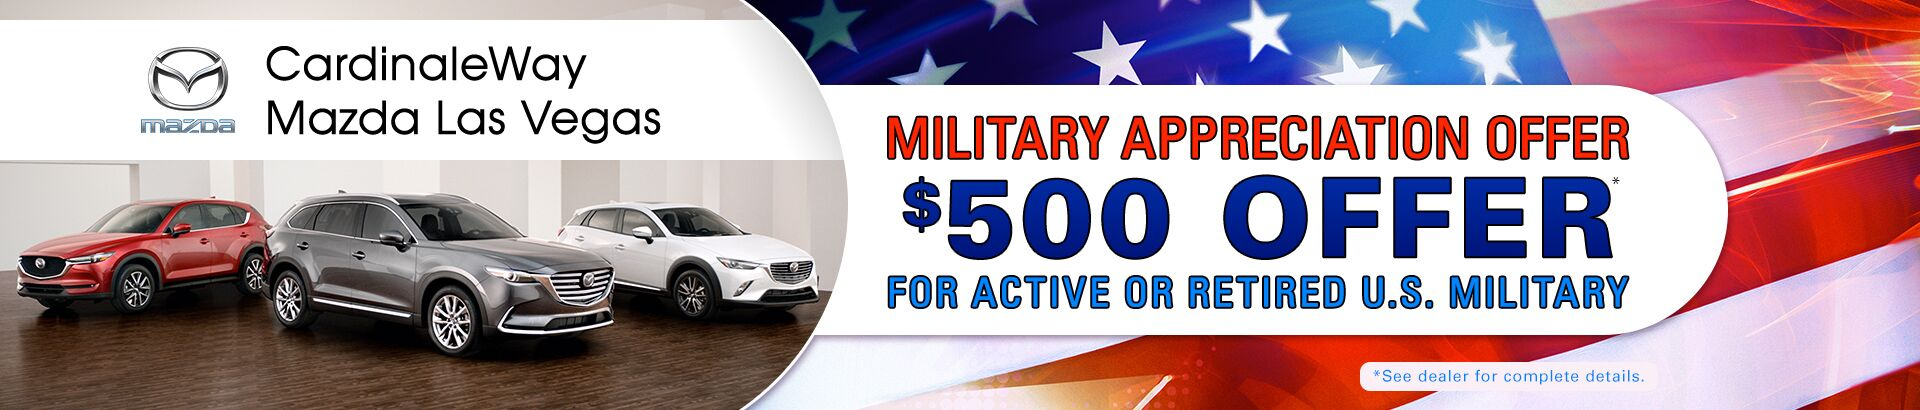 Lovely Military Appreciation Offer